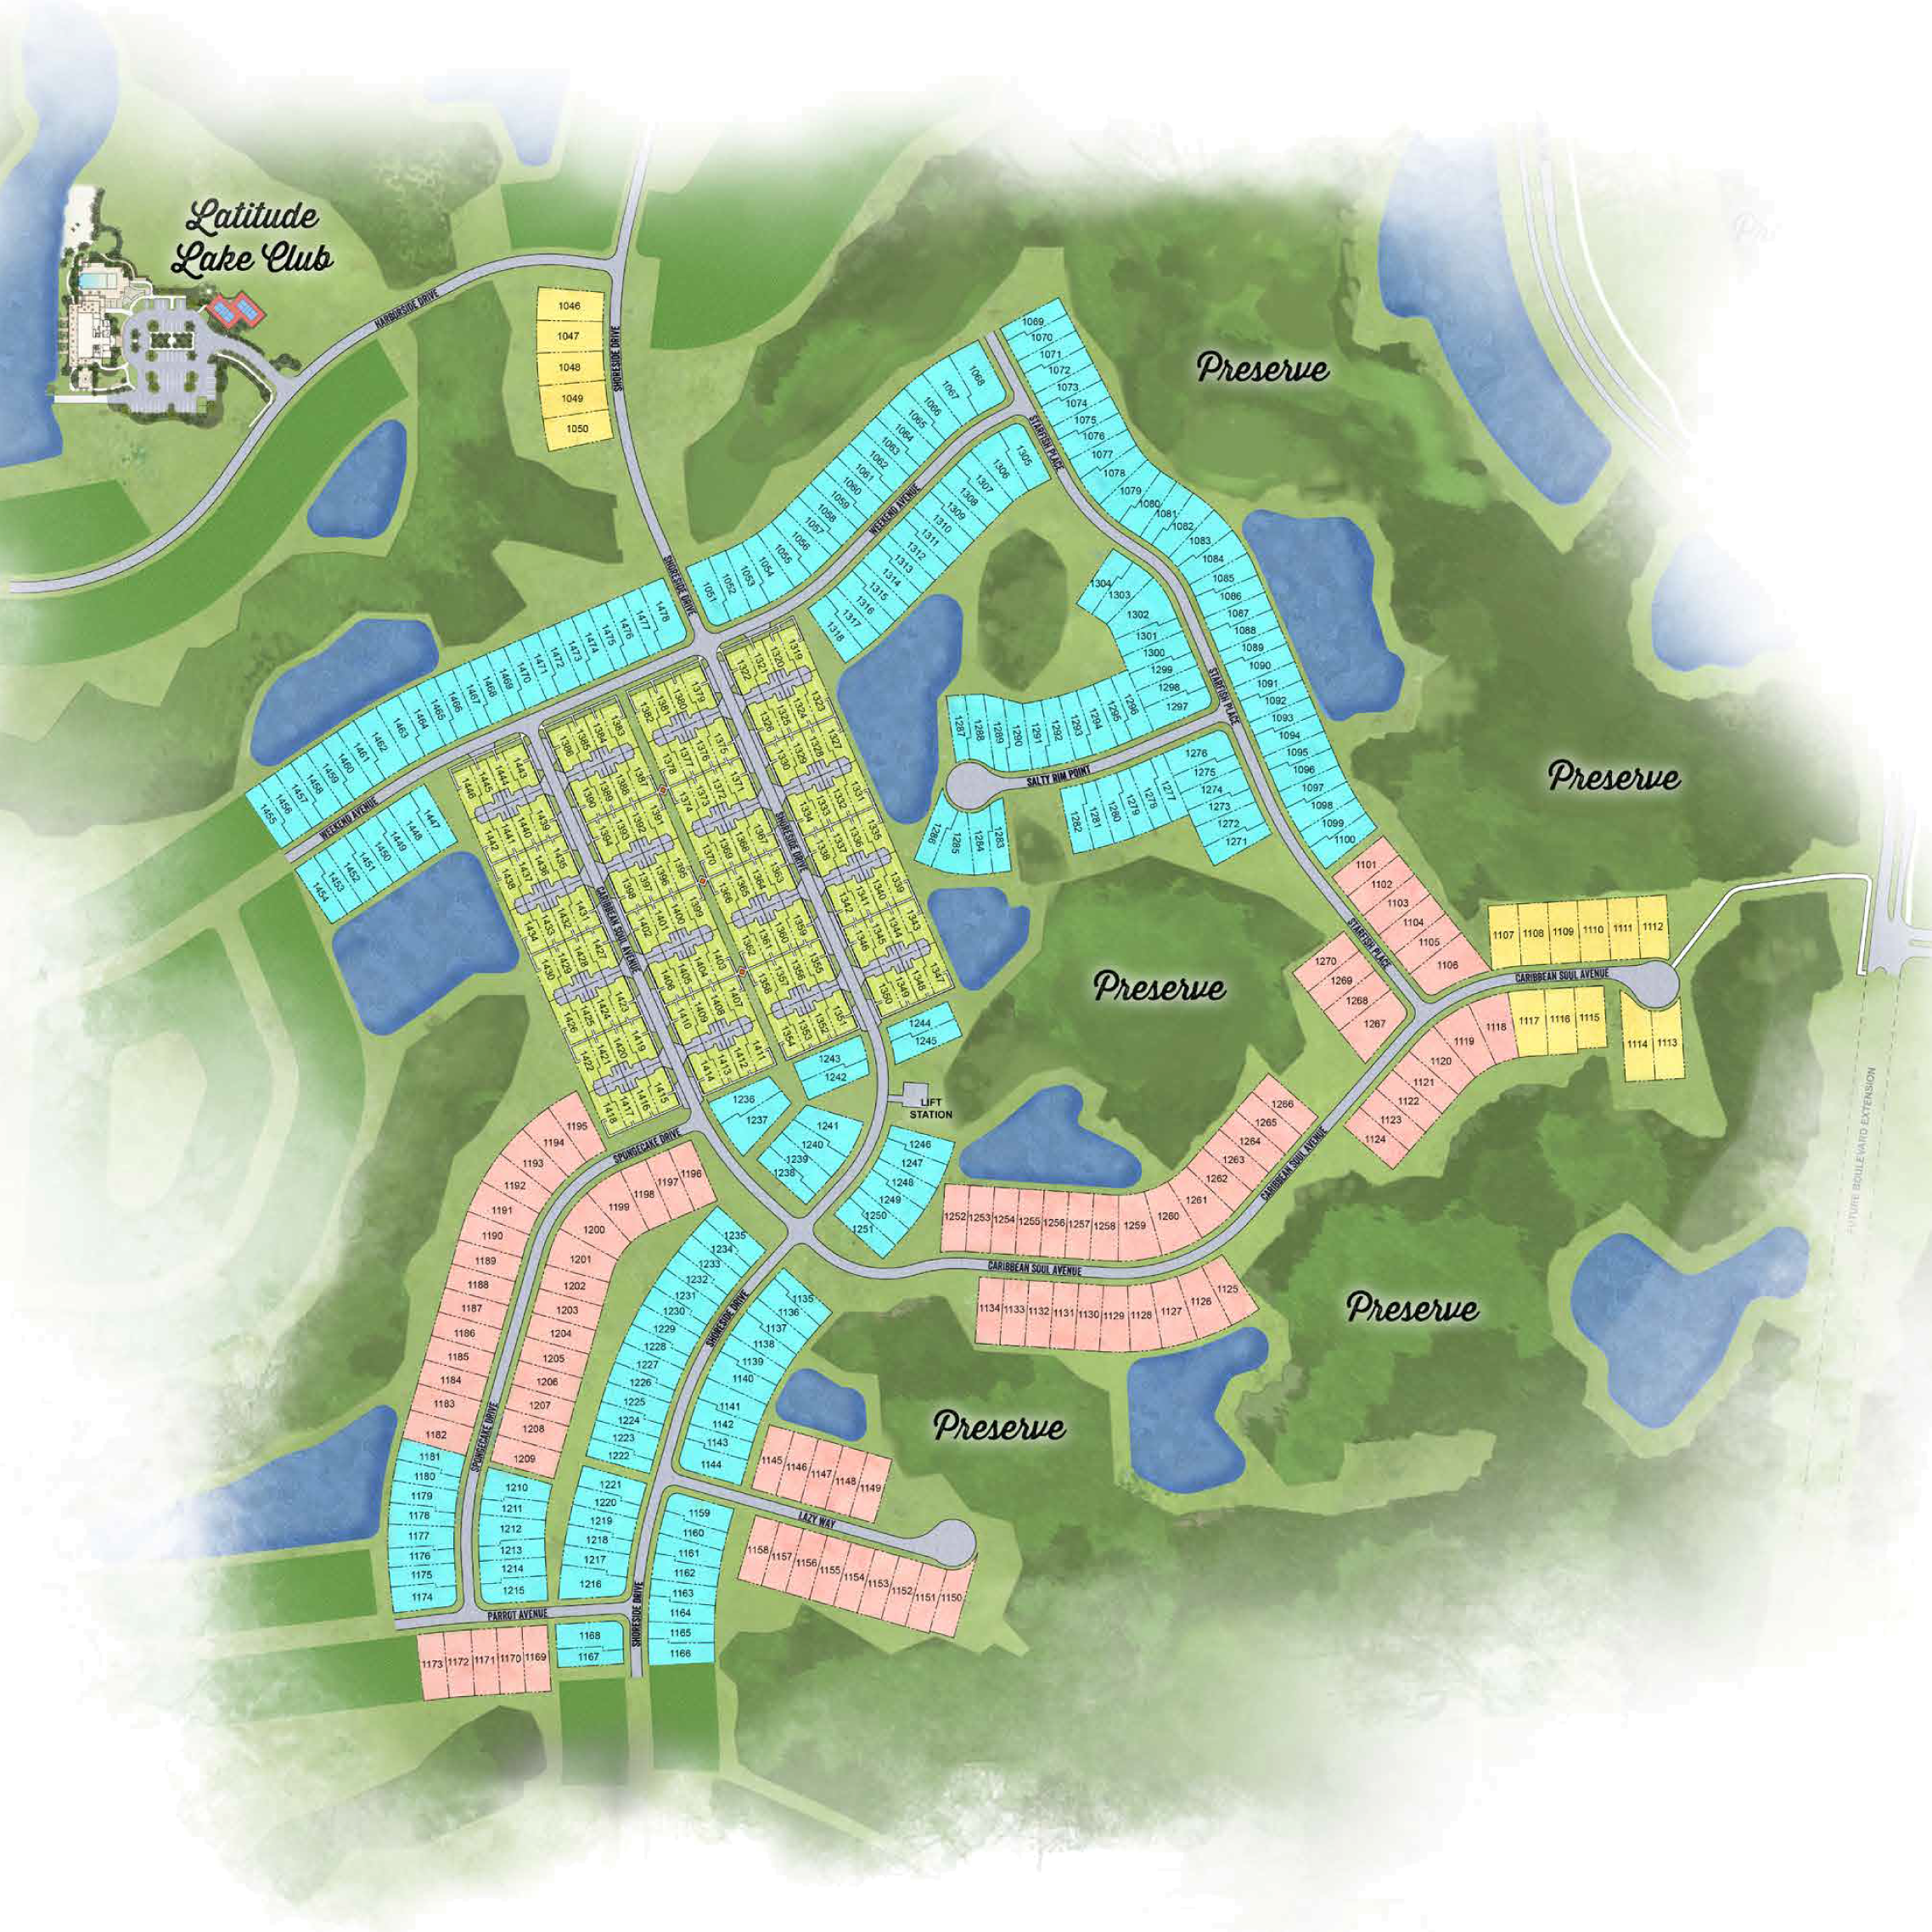 Latitude Margaritaville Hilton Head Plan with areas of community Phase 5 site plan and interest